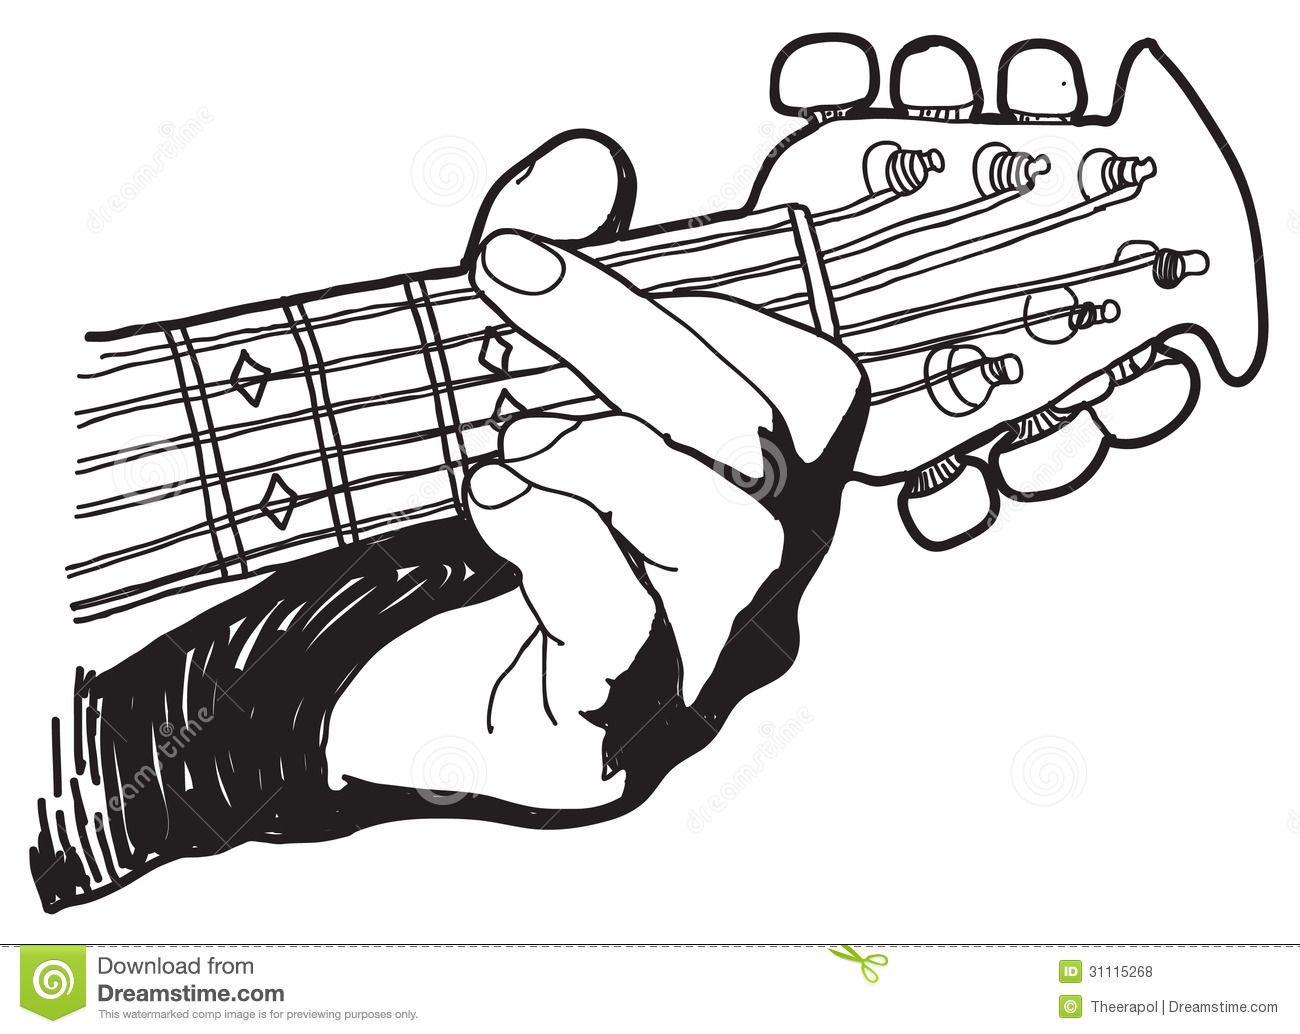 Royalty Free Stock Photos Hand Drawing Playing Guitar Image31115268 together with Stock Illustration Cyborg D Digital Render Female Isolated White Background Image52976922 furthermore Stock Illustration Chess Game Emblem King Queen Logo Black Silhouettes Framed Laurel Wreath Stars Caption Image53091438 likewise Chess Pieces Including King Queen Rook 21180938 likewise Horse Outline. on chess vector graphics